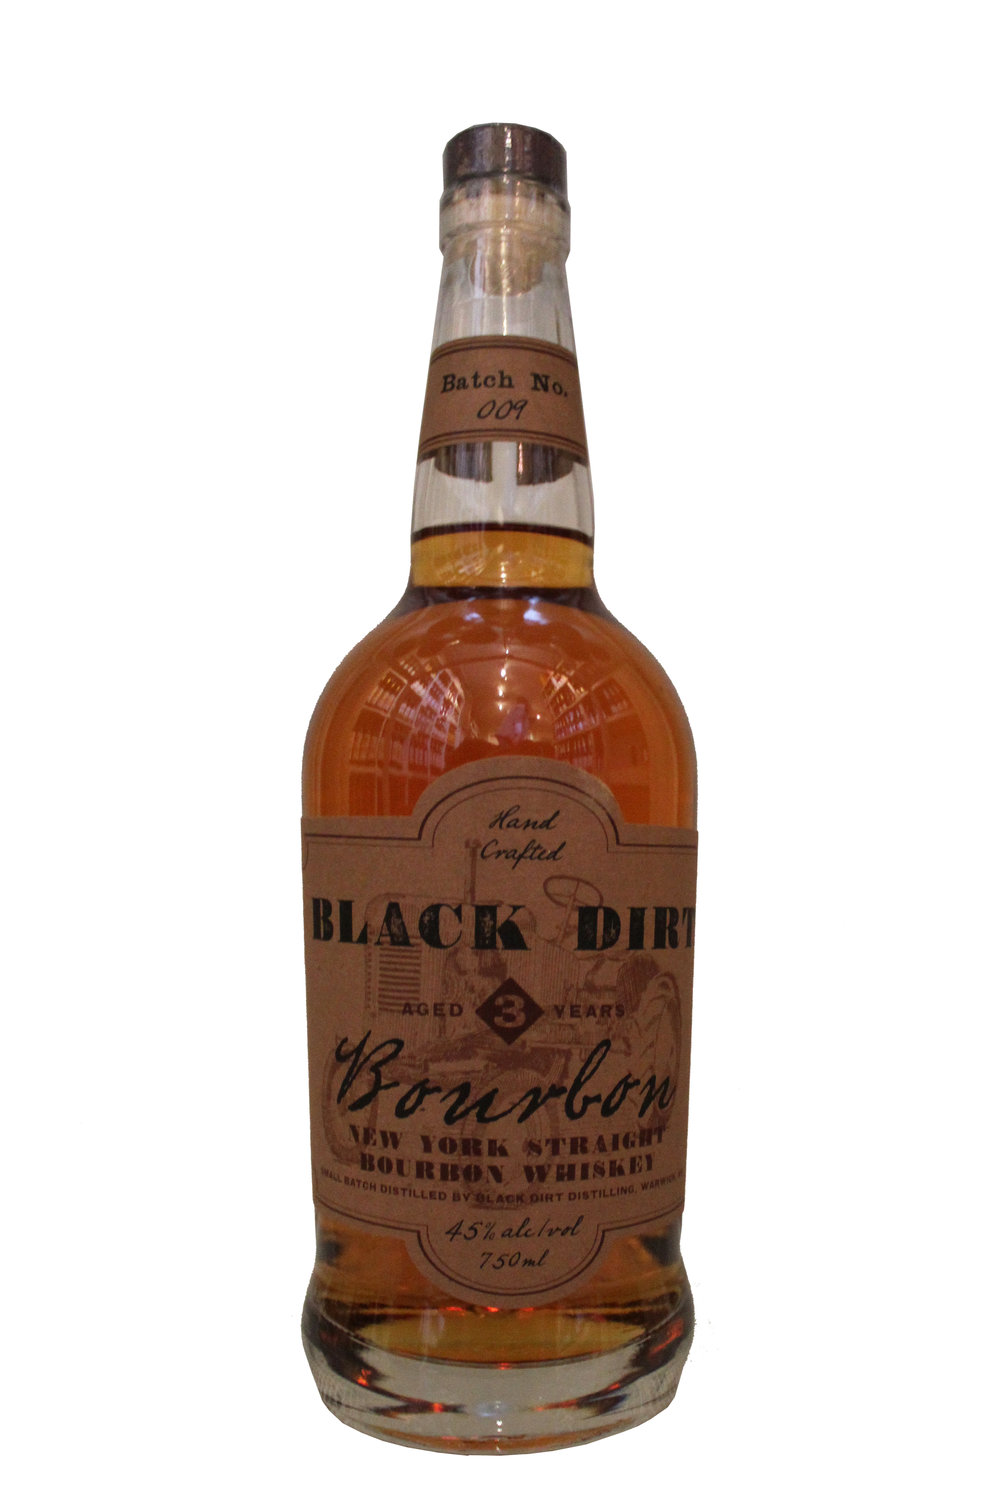 Bourbon Whiskey  Black Dirt,  New York